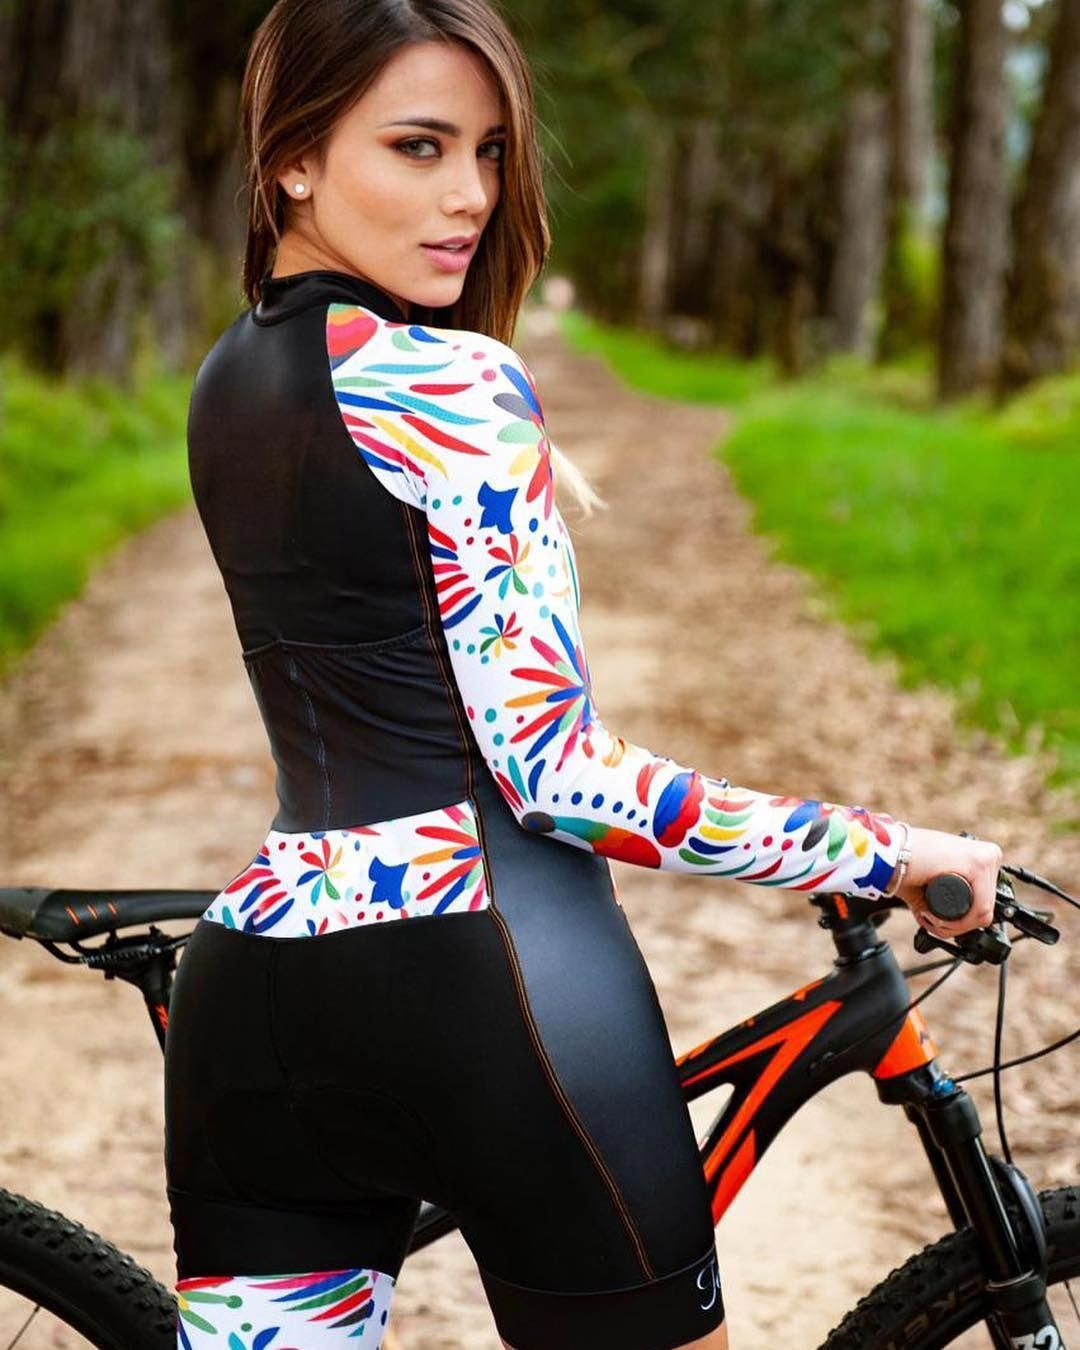 The Best Ways To Purchase A Mountain Bike Cycling Outfit Female